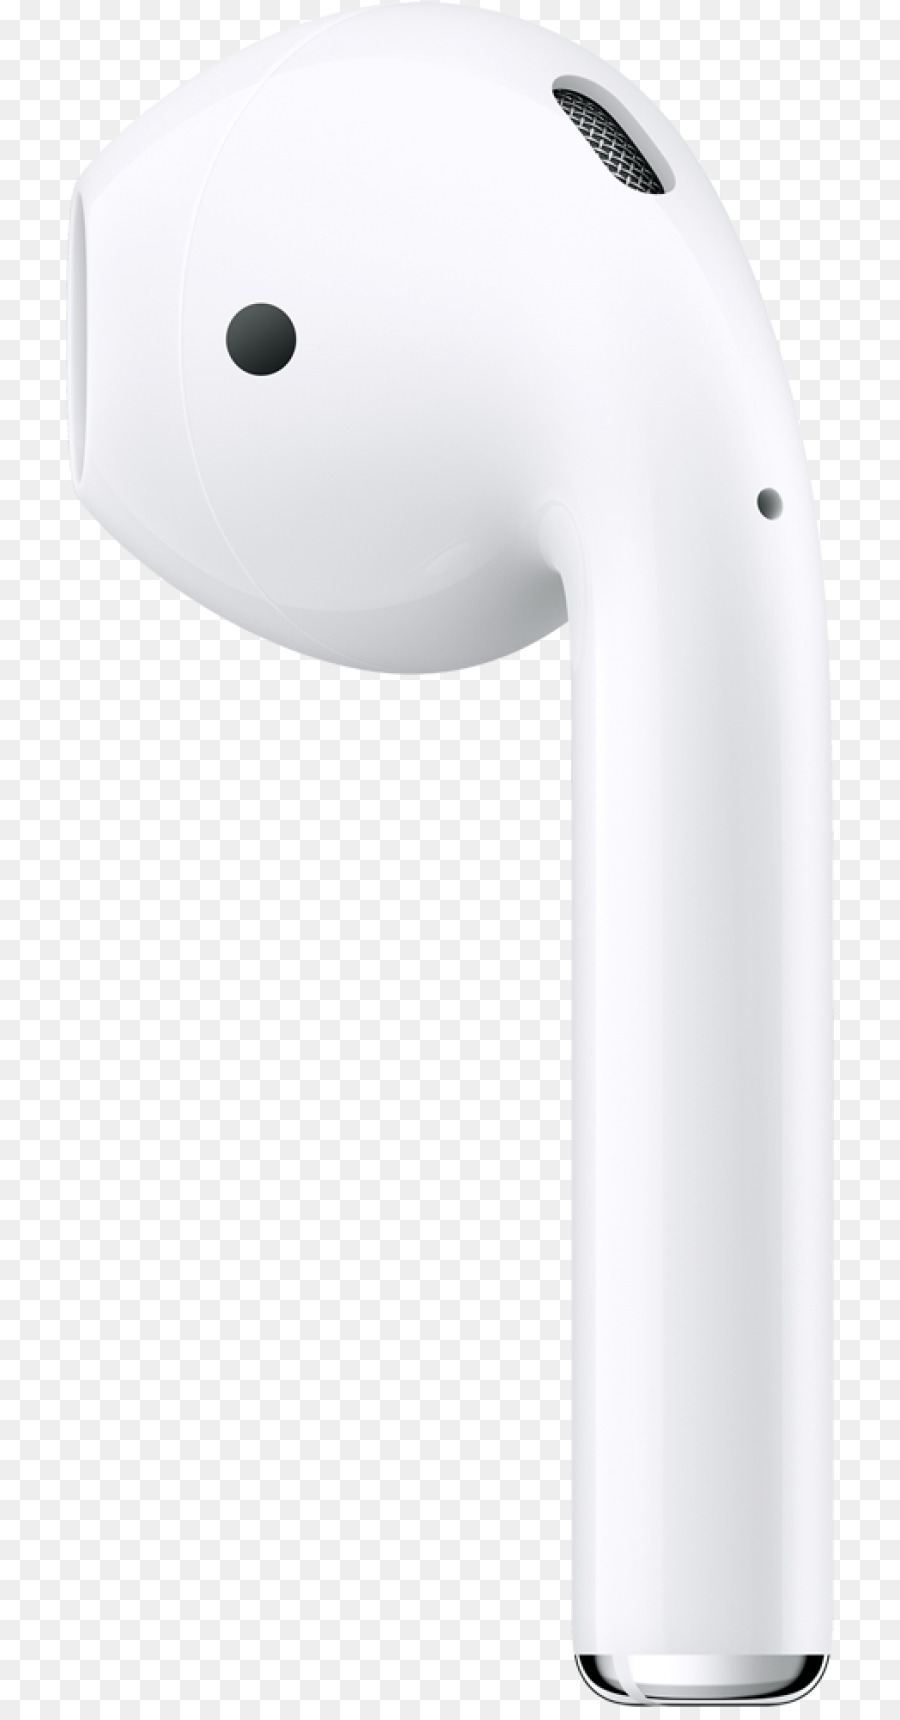 Airpods png iphone. Apple headphones download free